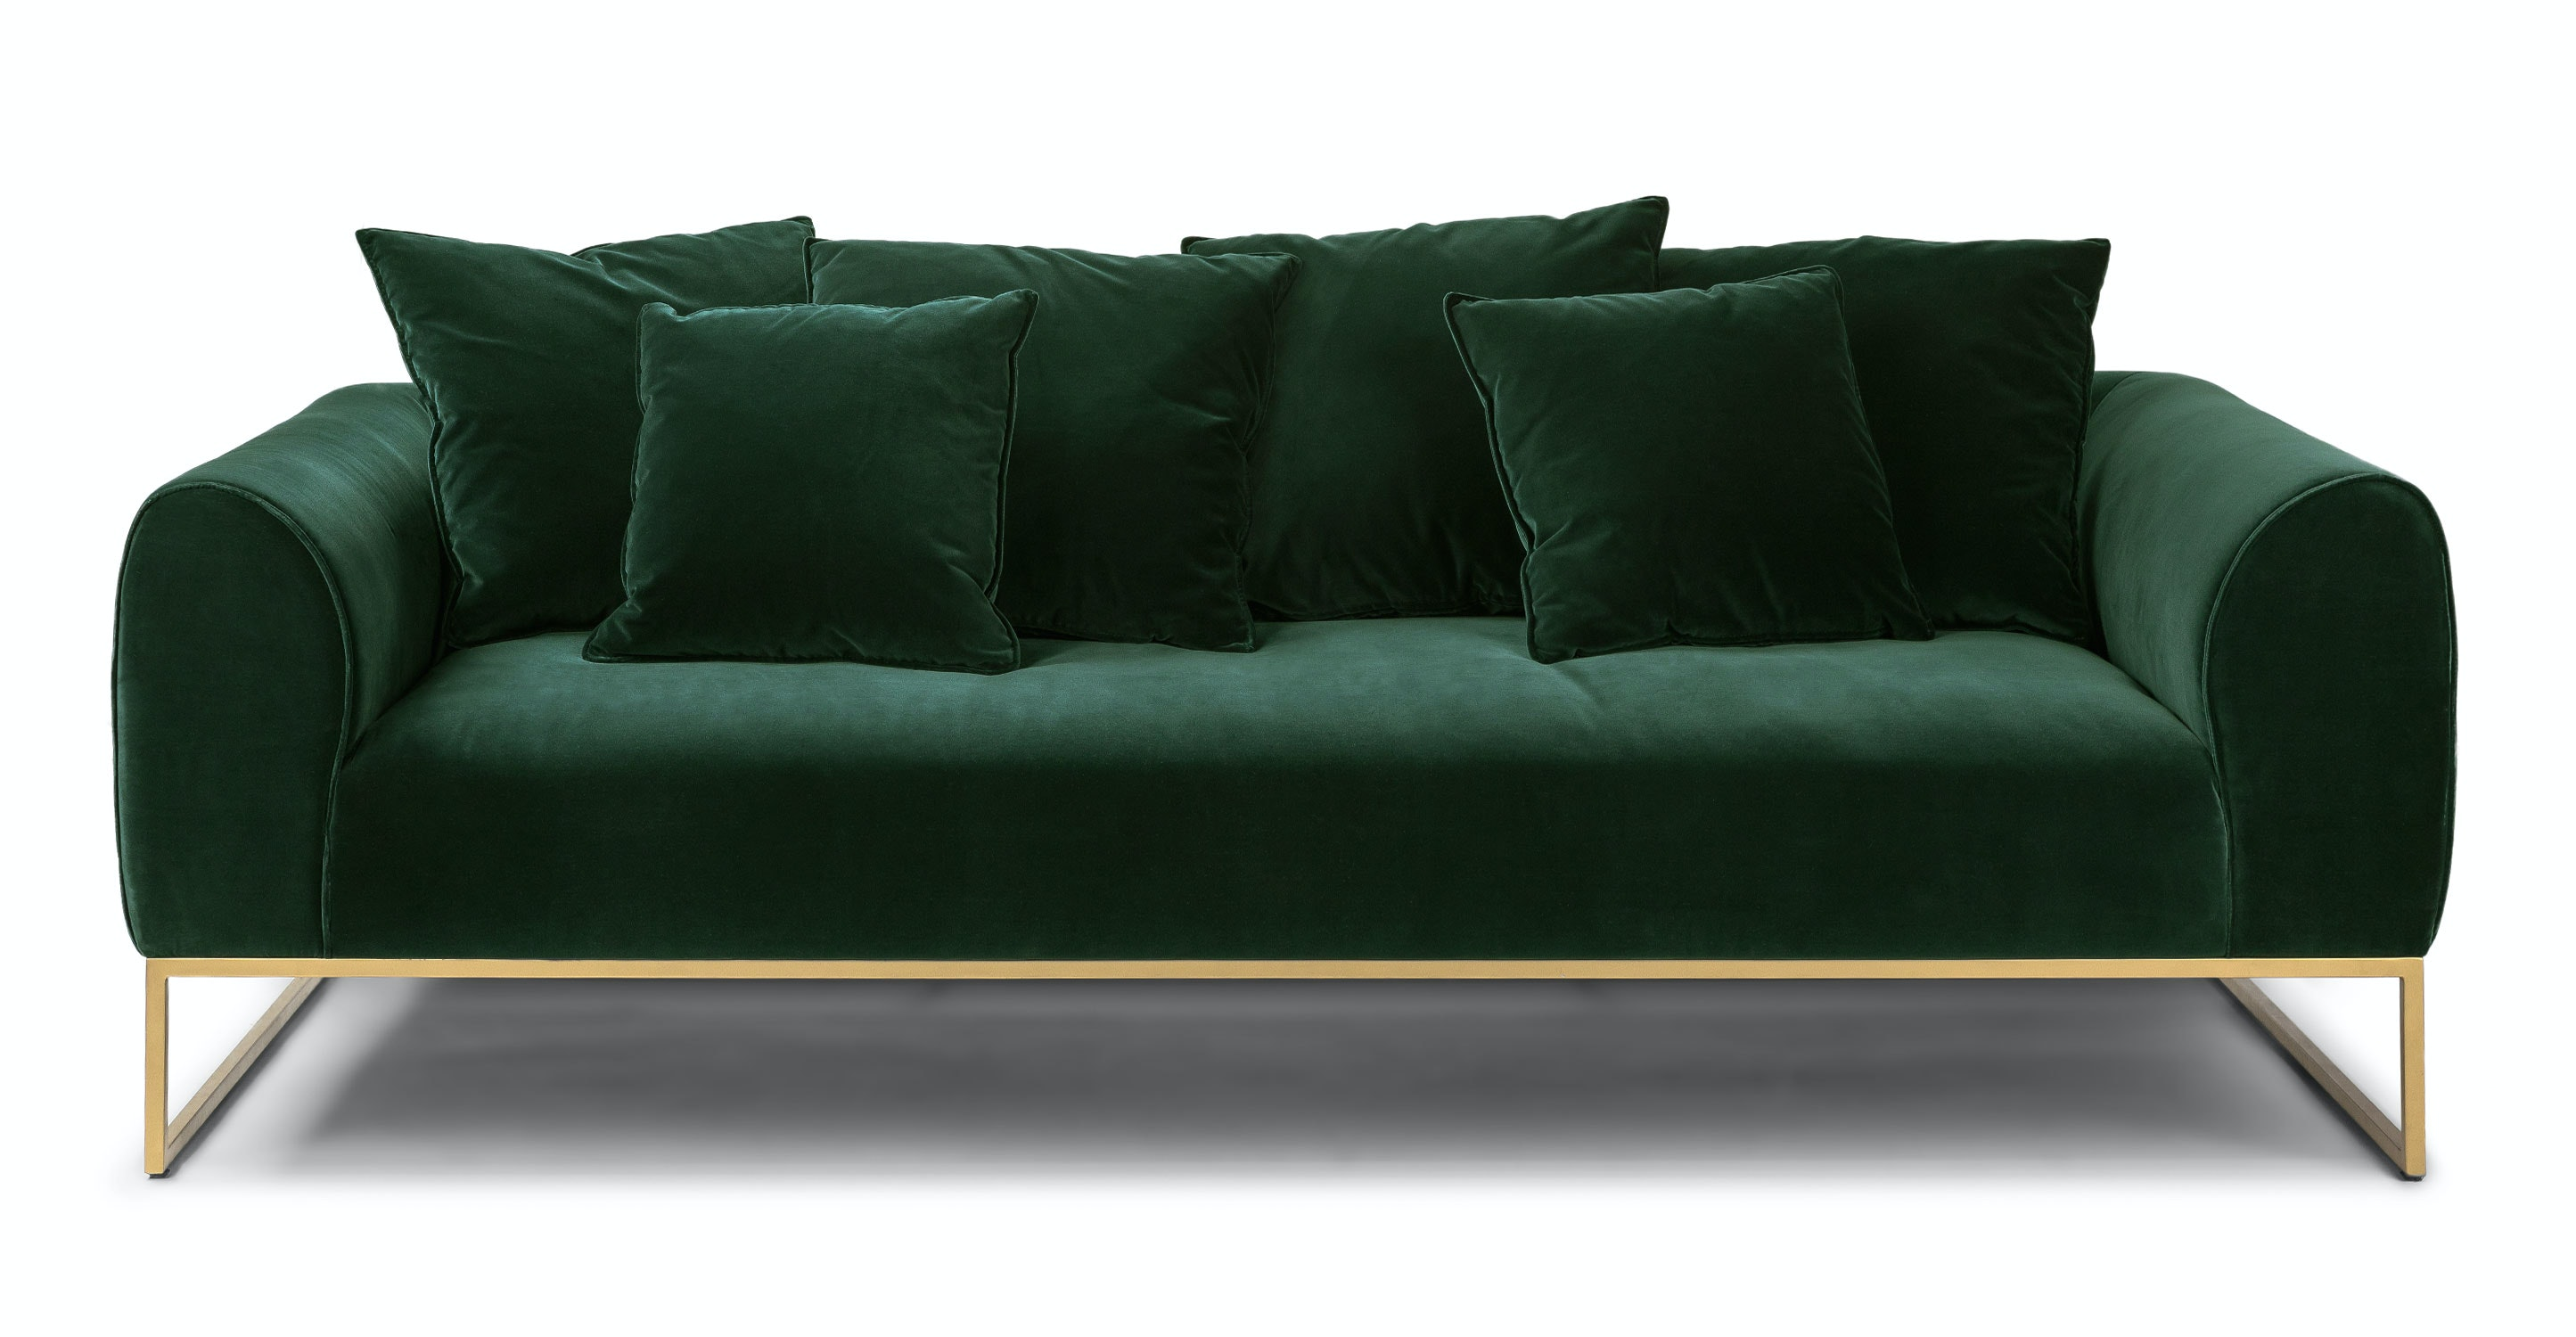 size 40 44074 8a557 Green Velvet Sofa - Upholstered | Article Kits Modern Furniture